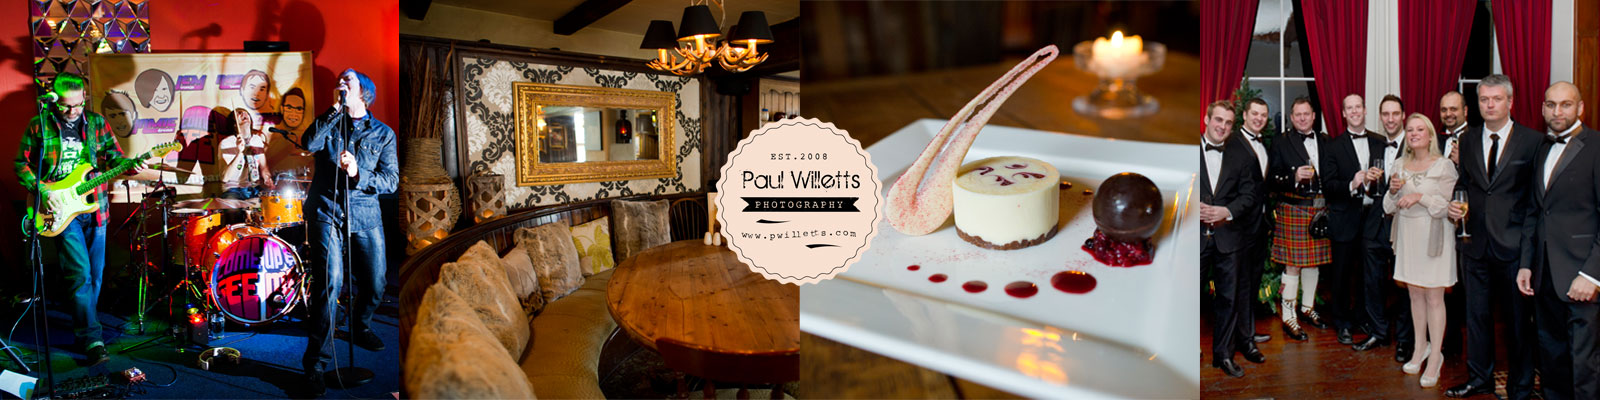 corporate-photography-worcestershire-paul-willetts